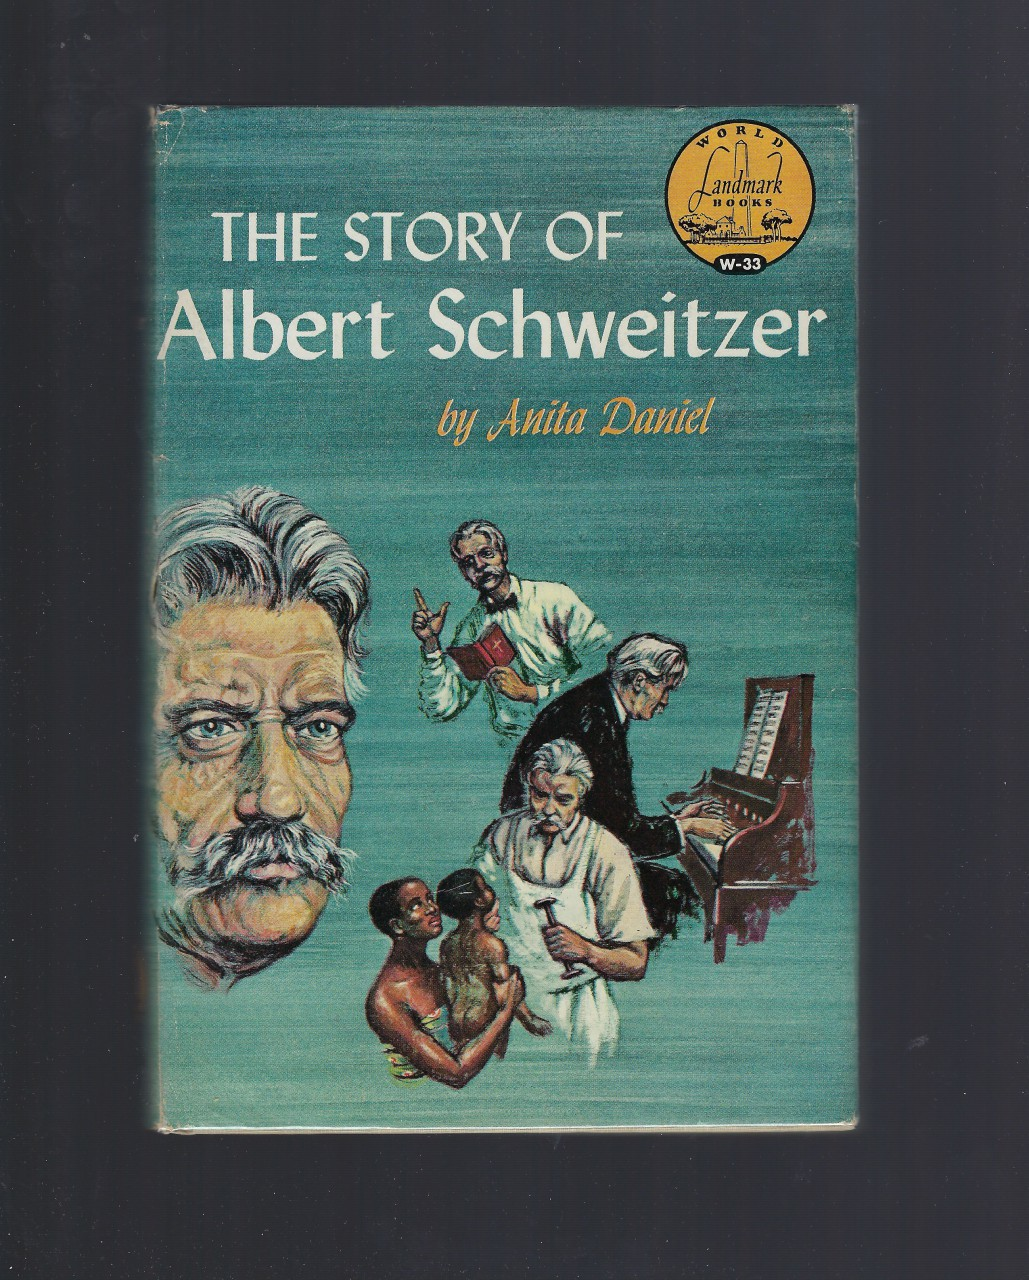 The Story of Albert Schweitzer World Landmark #33 HB/DJ, Anita Daniel; Illustrator-Erica Anderson; Illustrator-W. T. Mars